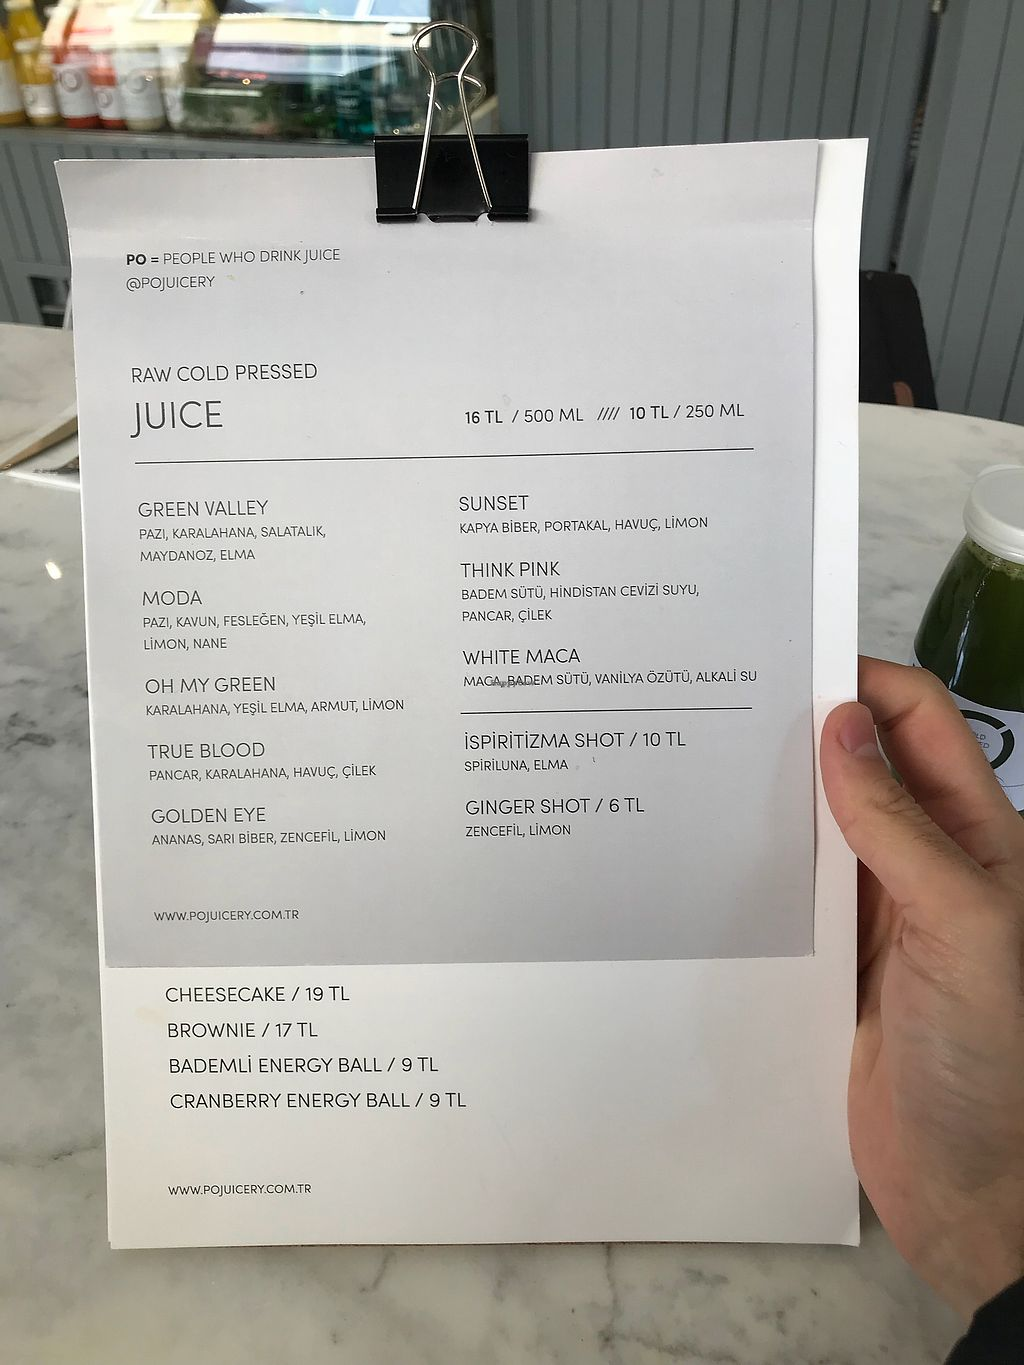 "Photo of PO Juicery  by <a href=""/members/profile/veganoteacher"">veganoteacher</a> <br/>Juice Menu <br/> April 7, 2018  - <a href='/contact/abuse/image/116447/381812'>Report</a>"